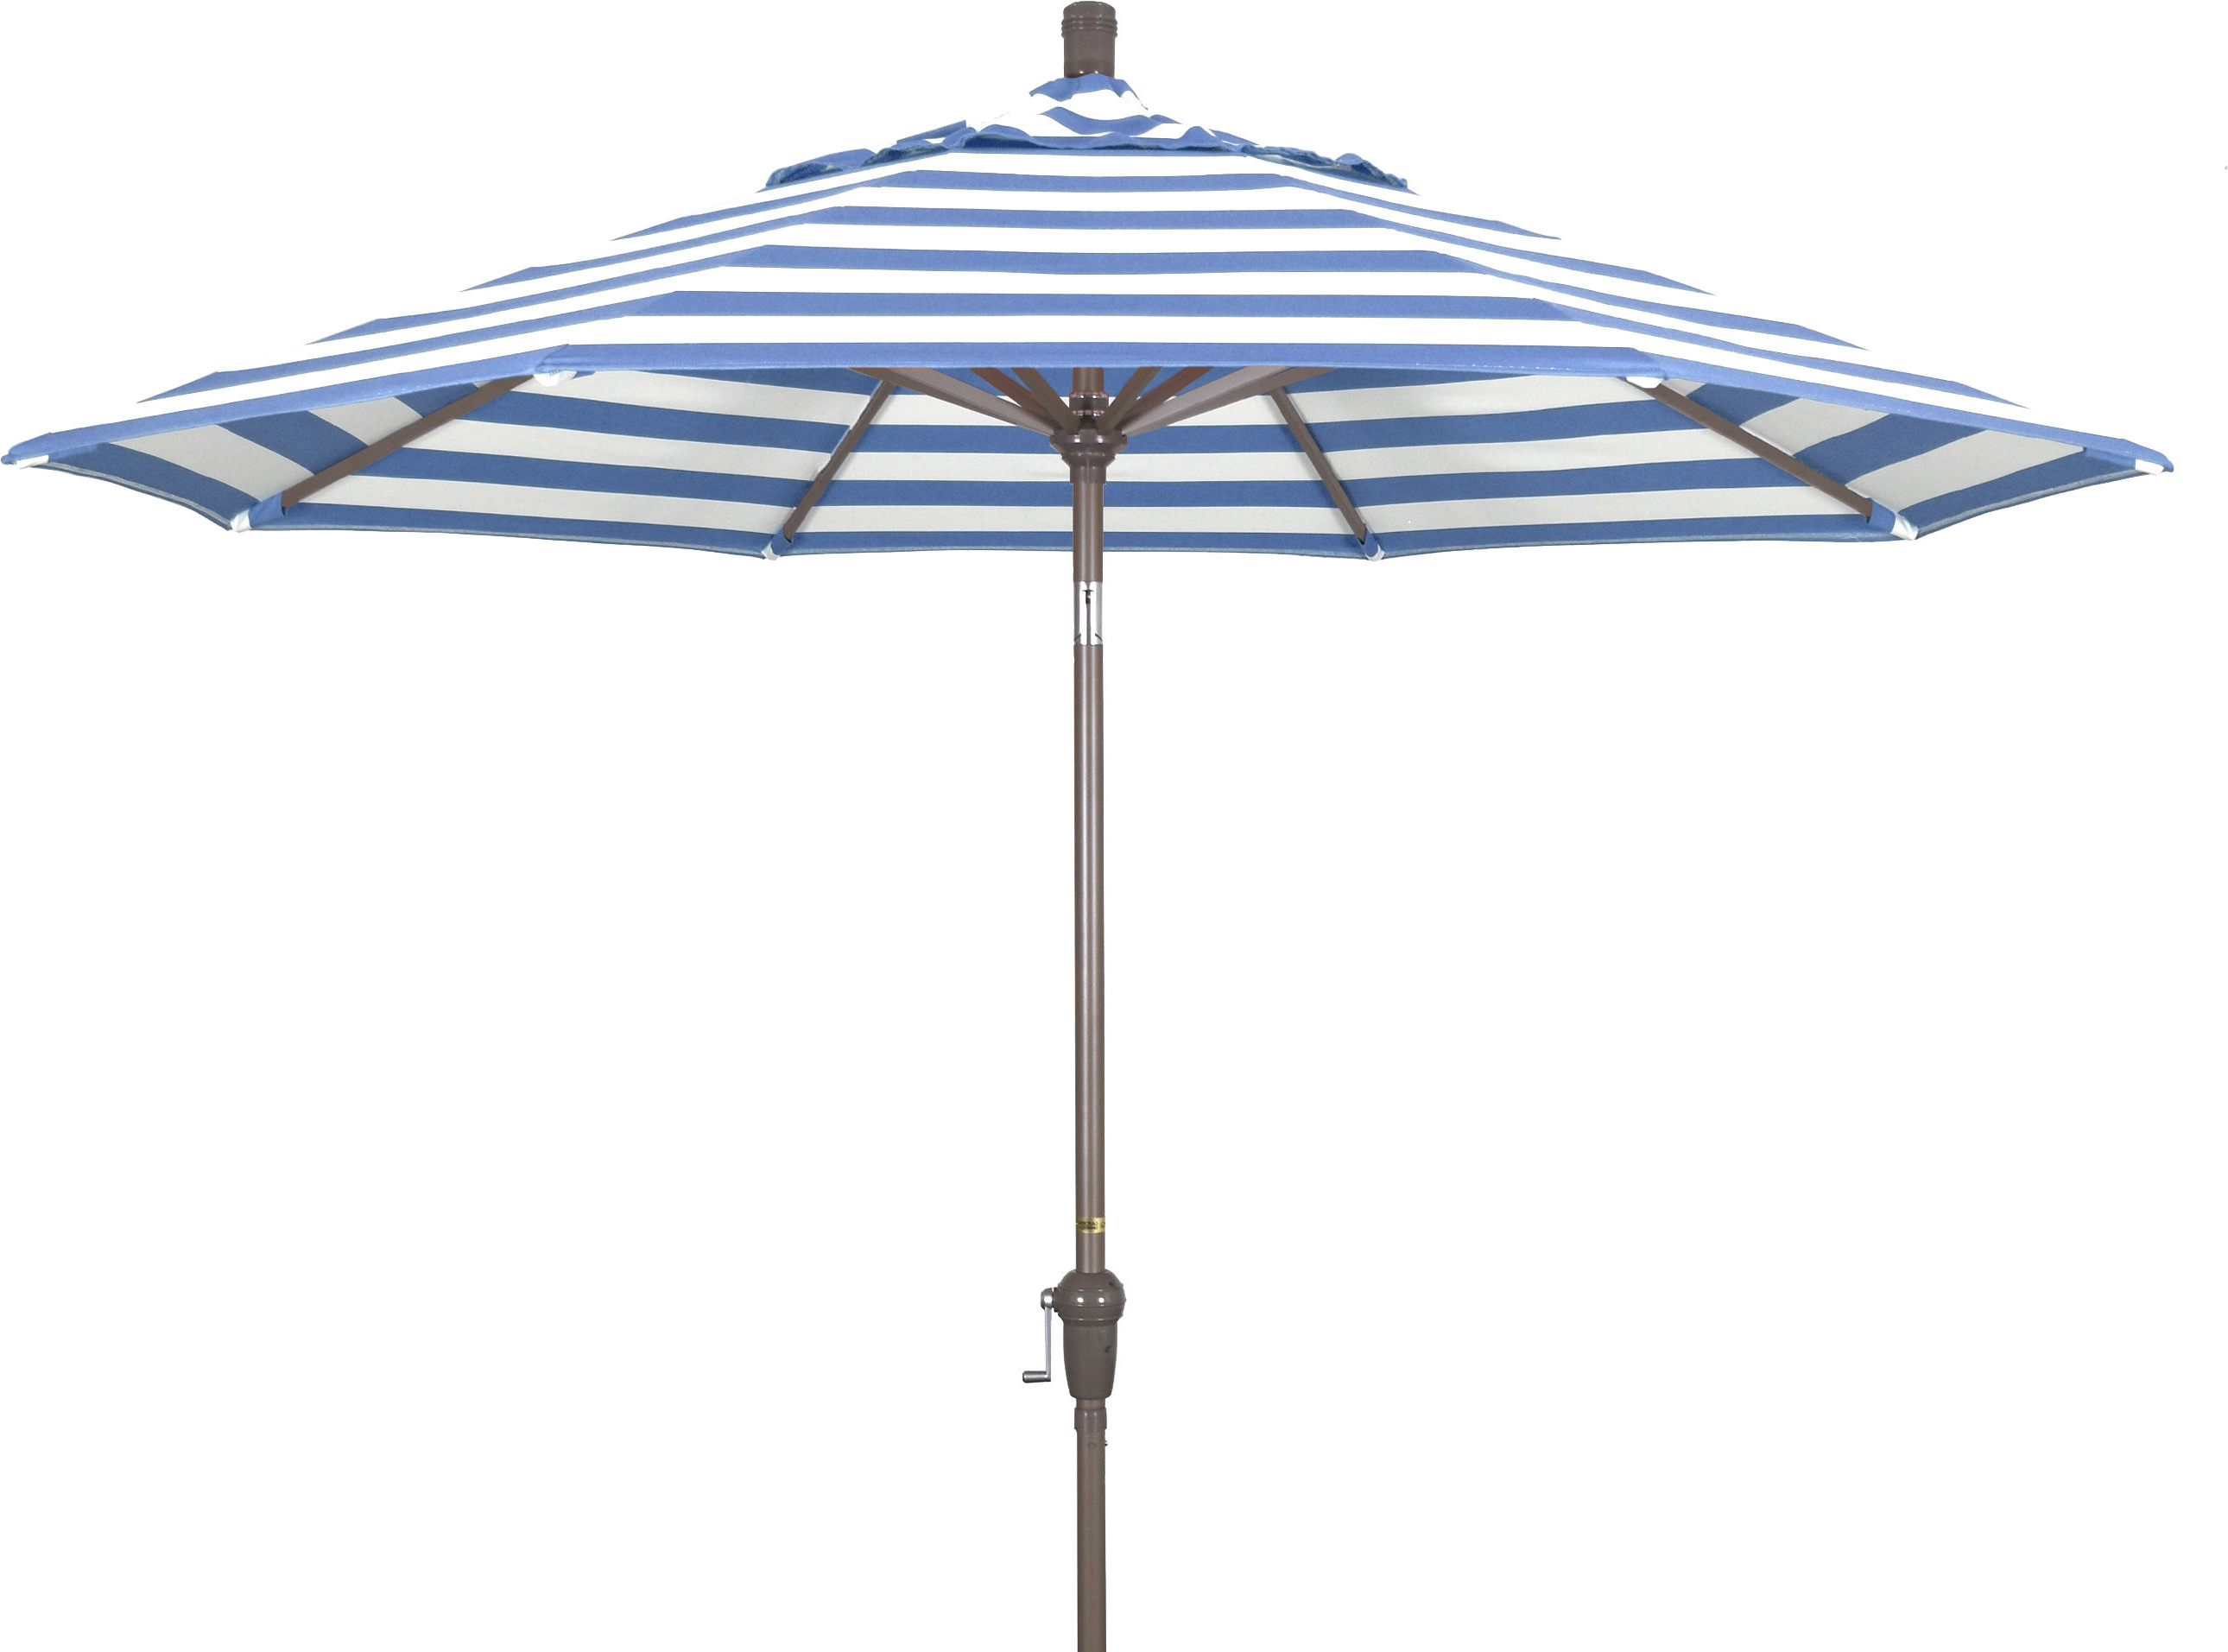 Caravelle Market Sunbrella Umbrellas Intended For 2019 9' Market Sunbrella Umbrella (View 18 of 20)